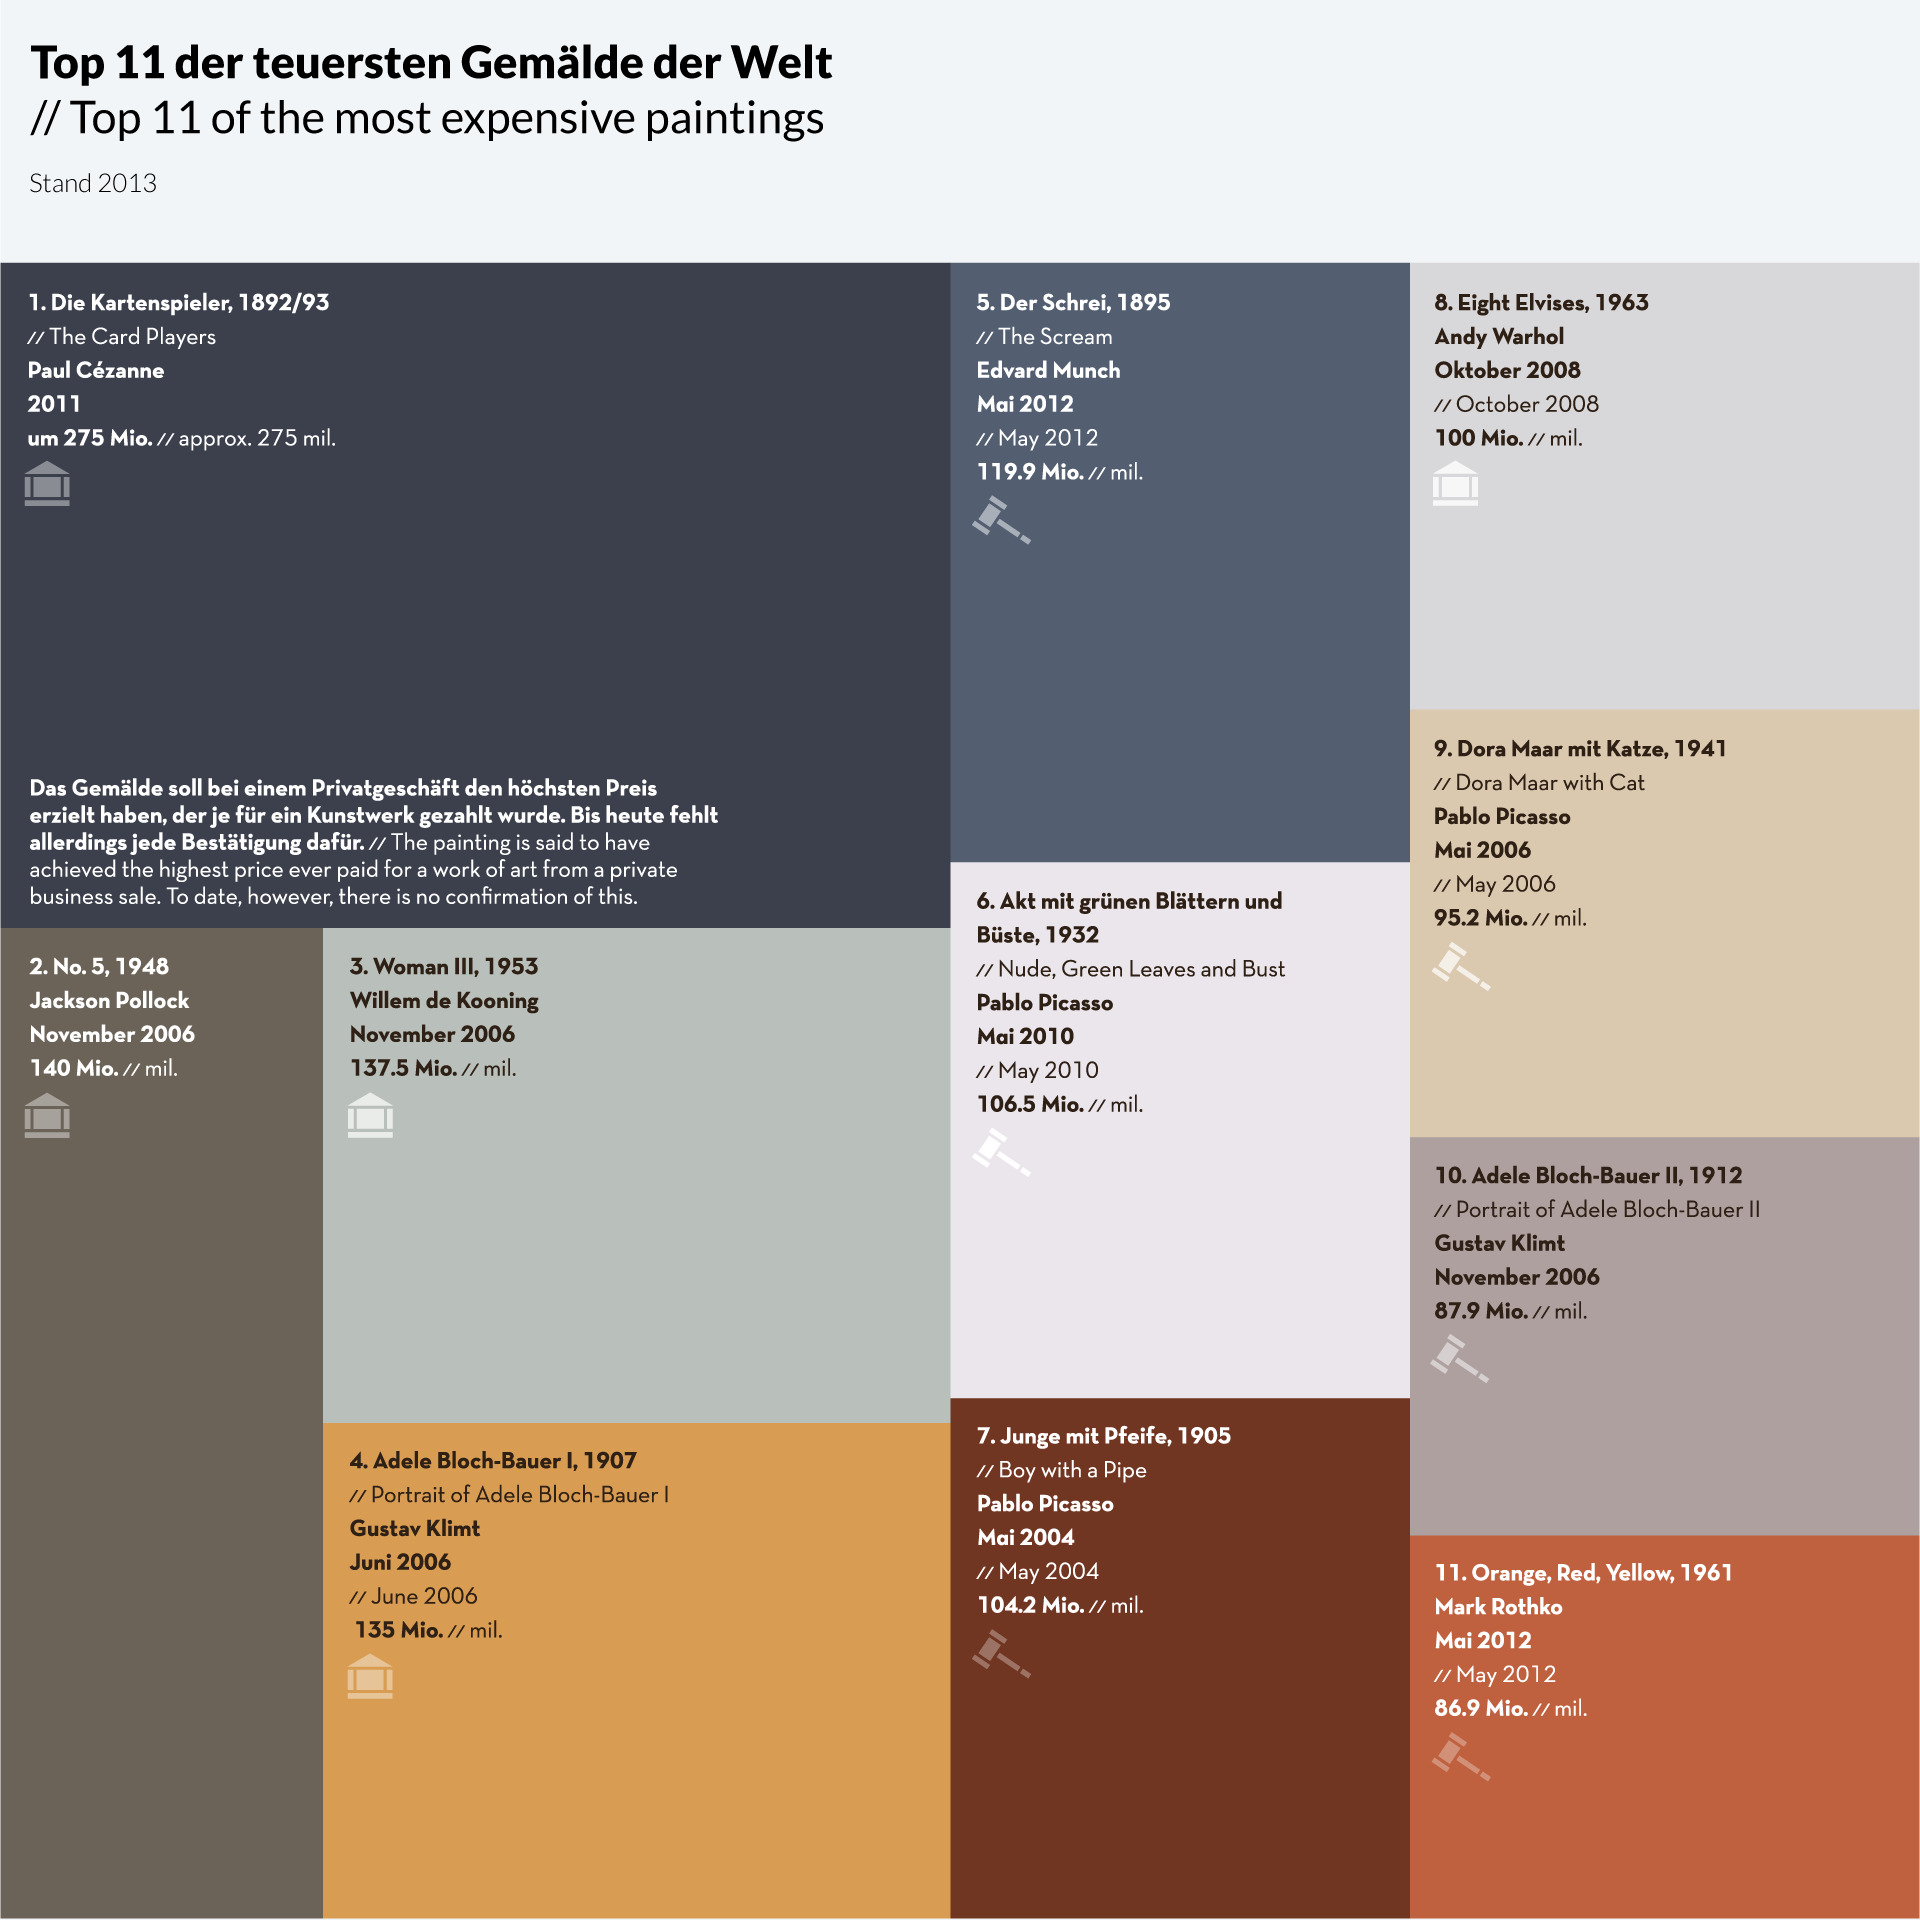 infographic-most-expensive-paintings